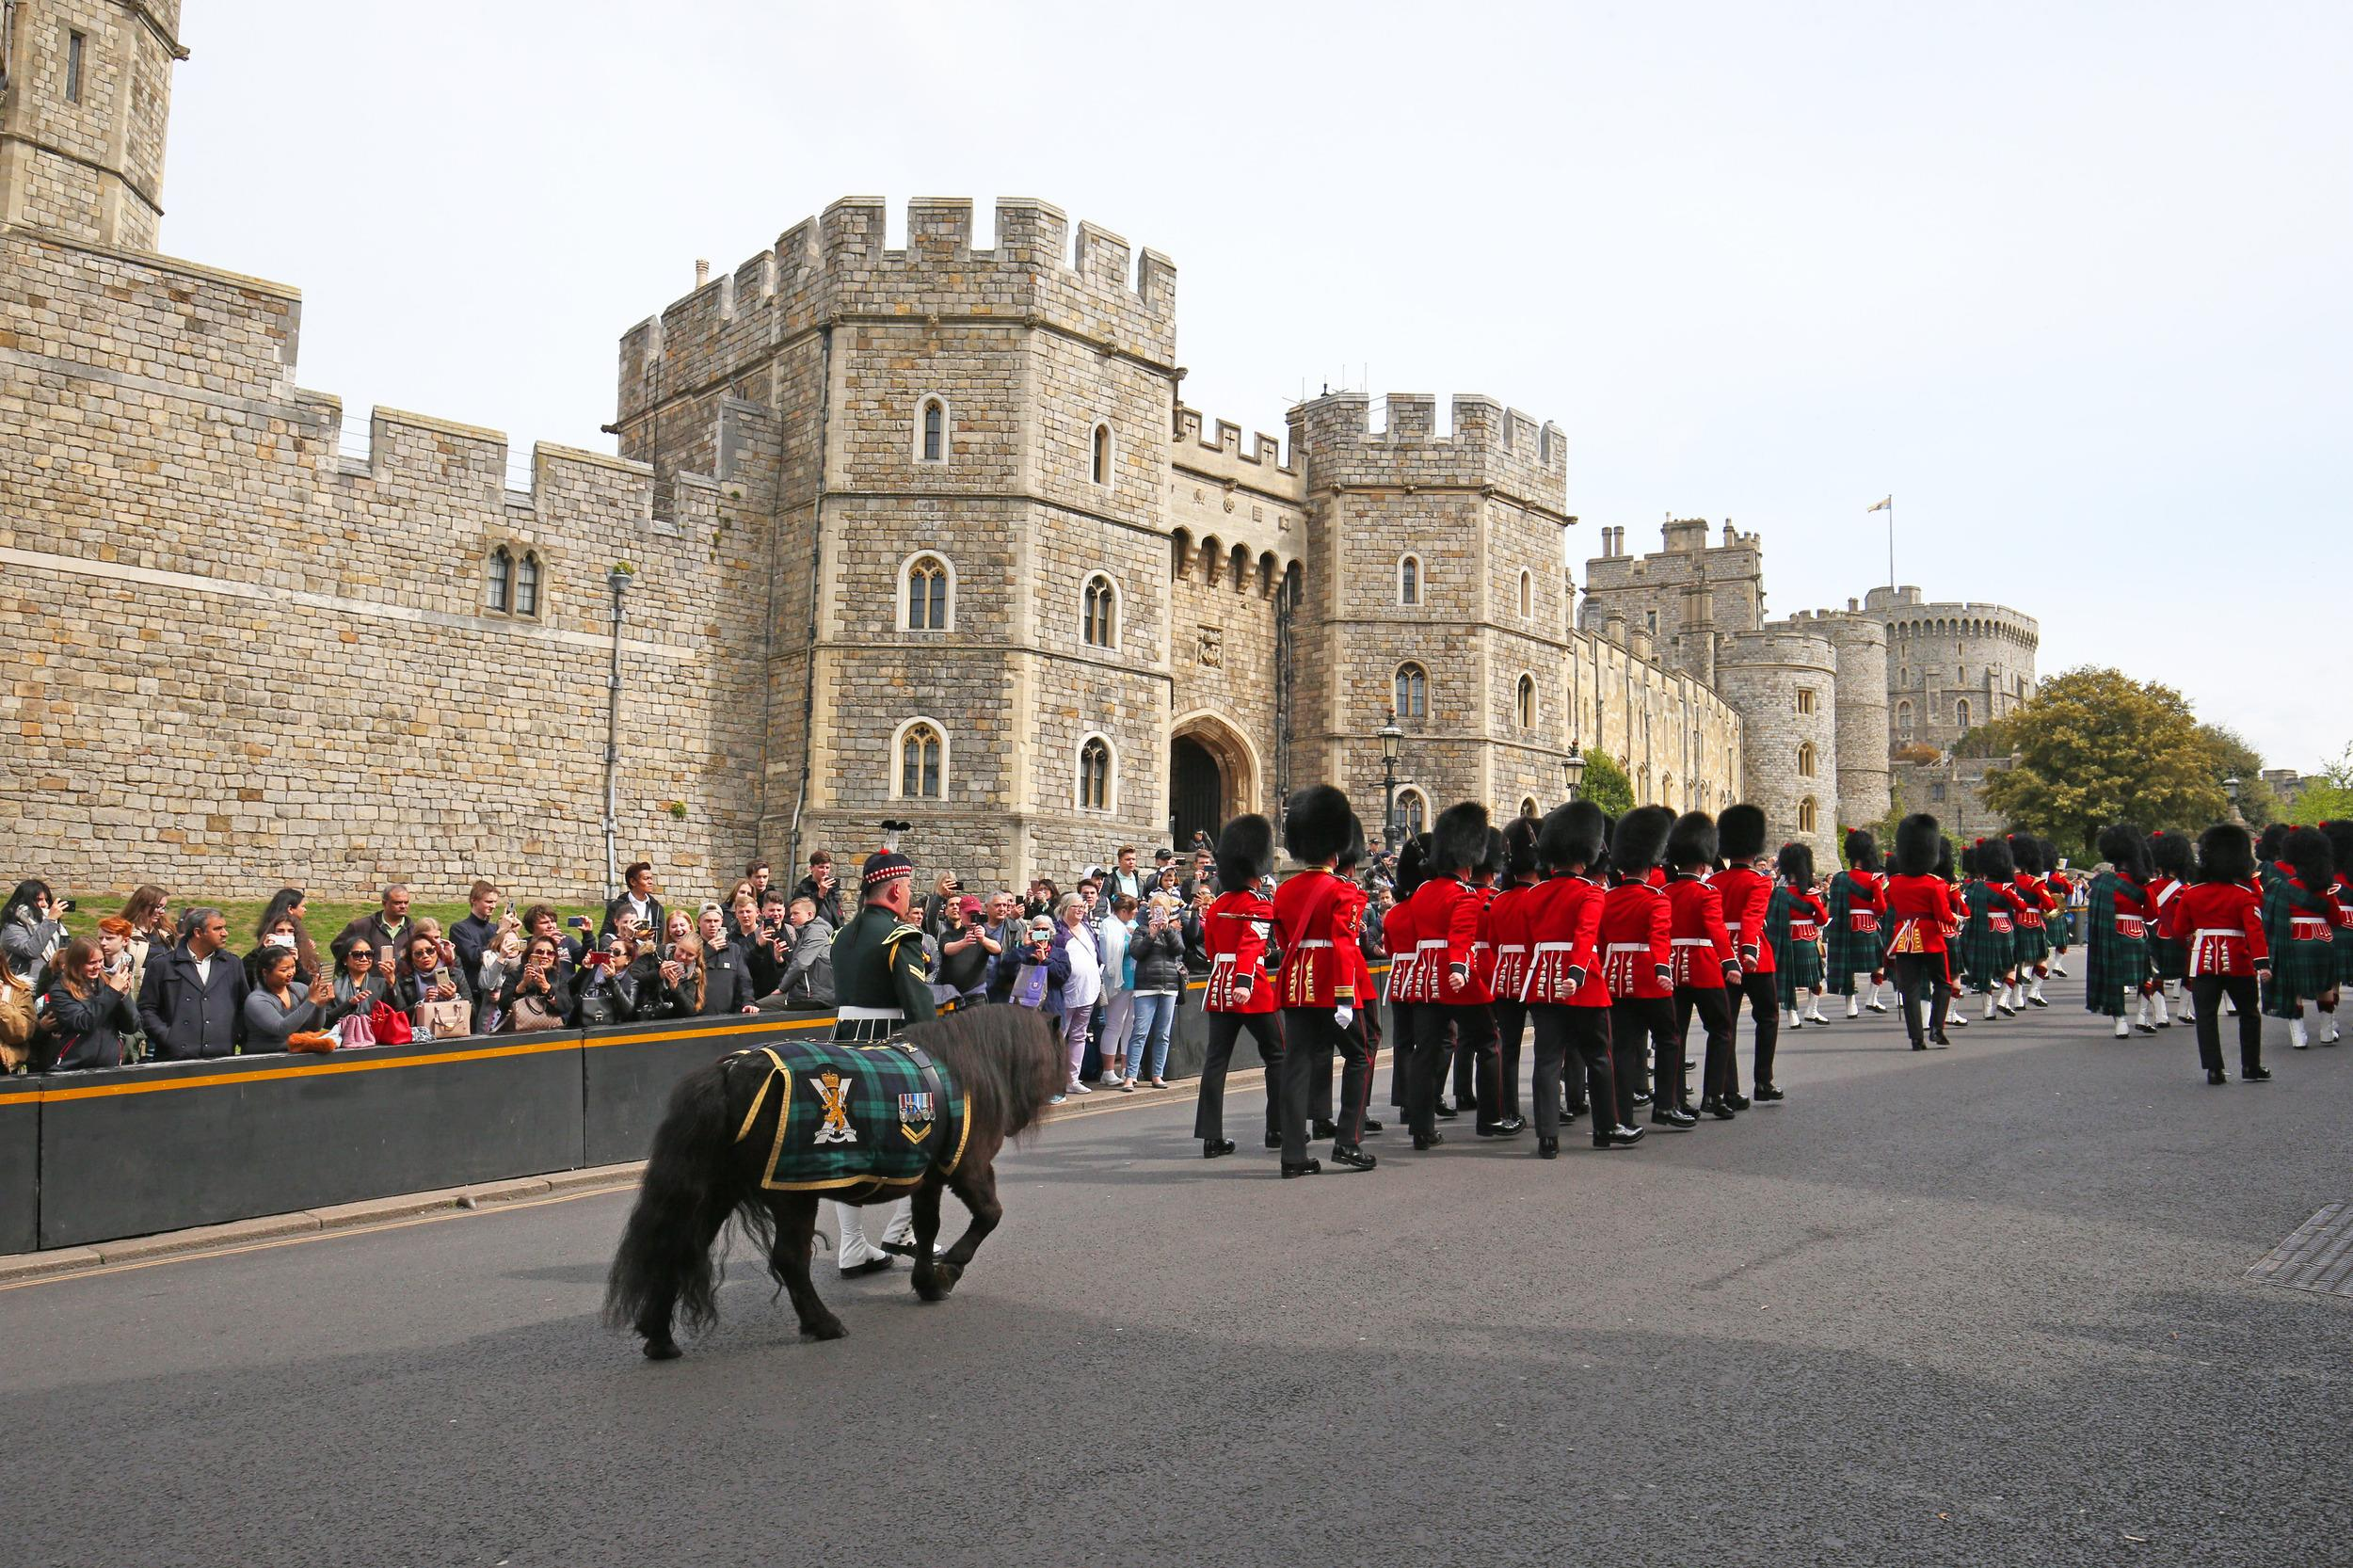 Crowds watch the changing of the guard at Windsor Castle in Berkshire, following the announcement of the birth of a baby boy to the Duke and Duchess of Sussex. (Photo by Jonathan Brady/PA Images via Getty Images)